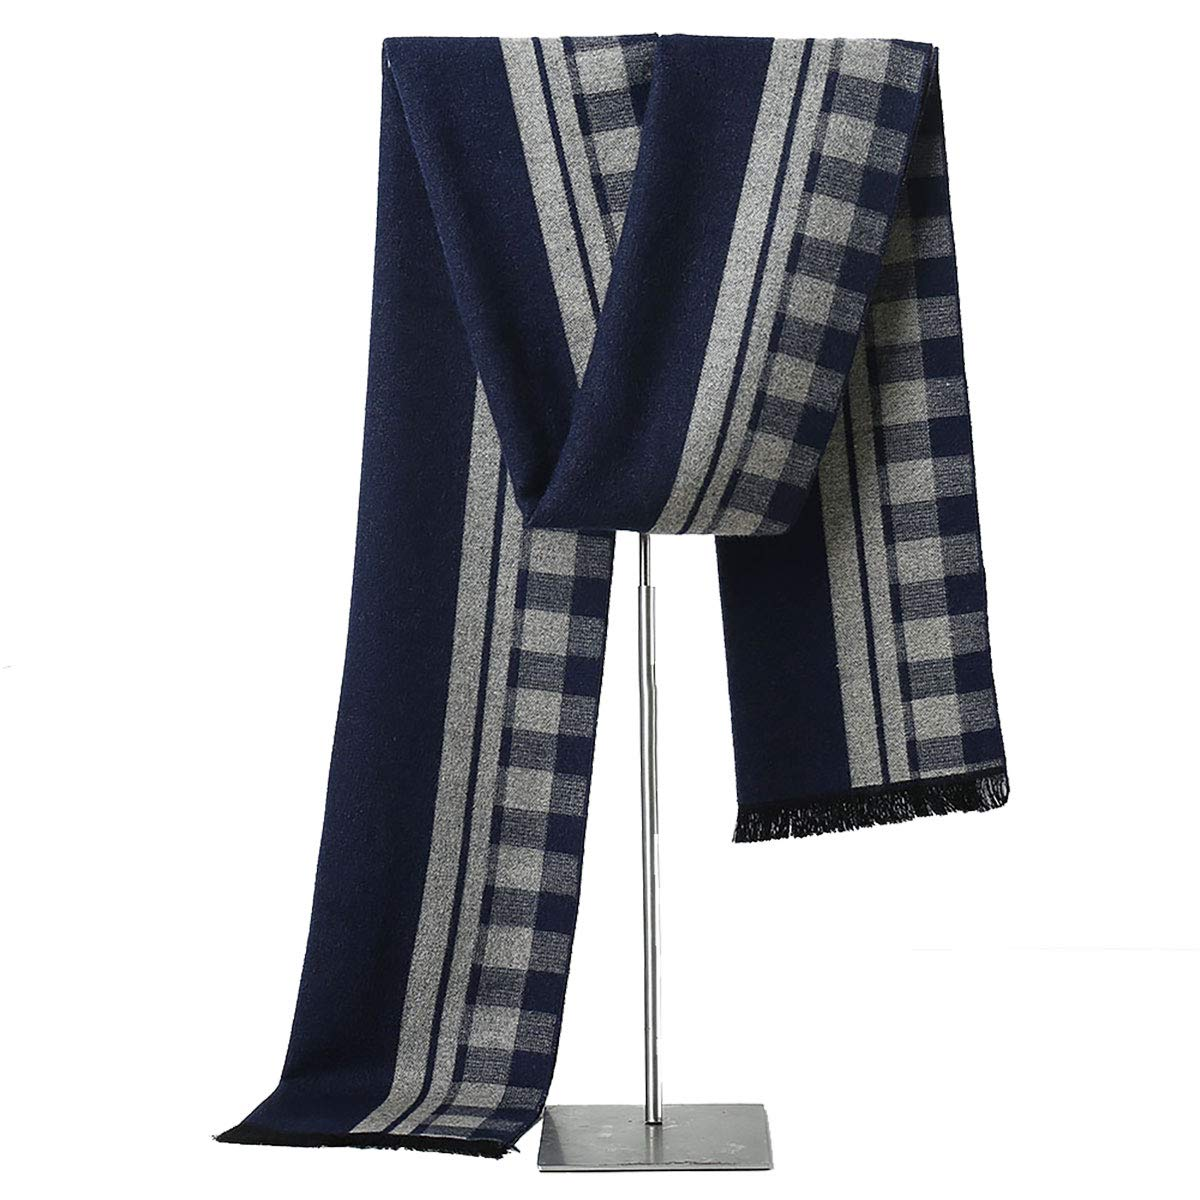 Mens Winter Cashmere Scarf - Fashion Formal Soft Scarves for Men (Gray/White Plaid)